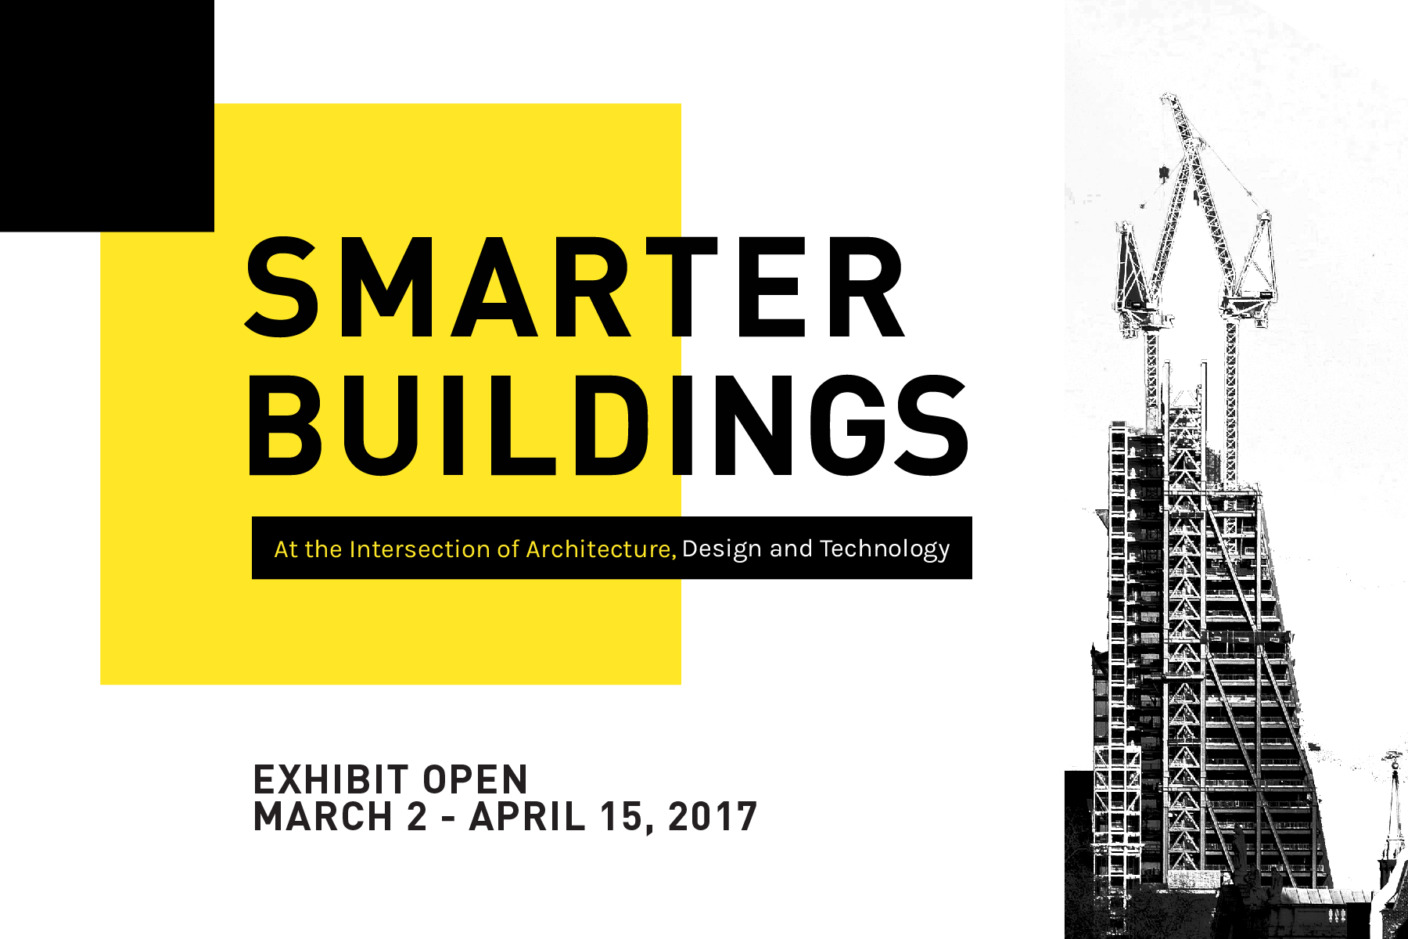 Smarter buildingsuse a new generation of tools that leverage today's data-rich environments to help create more capable, sustainablestructures. The exhibit investigates a range of cutting-edge technologies in building science, from environmental controls and waste water systems to unique user interfaces and advanced construction methods.